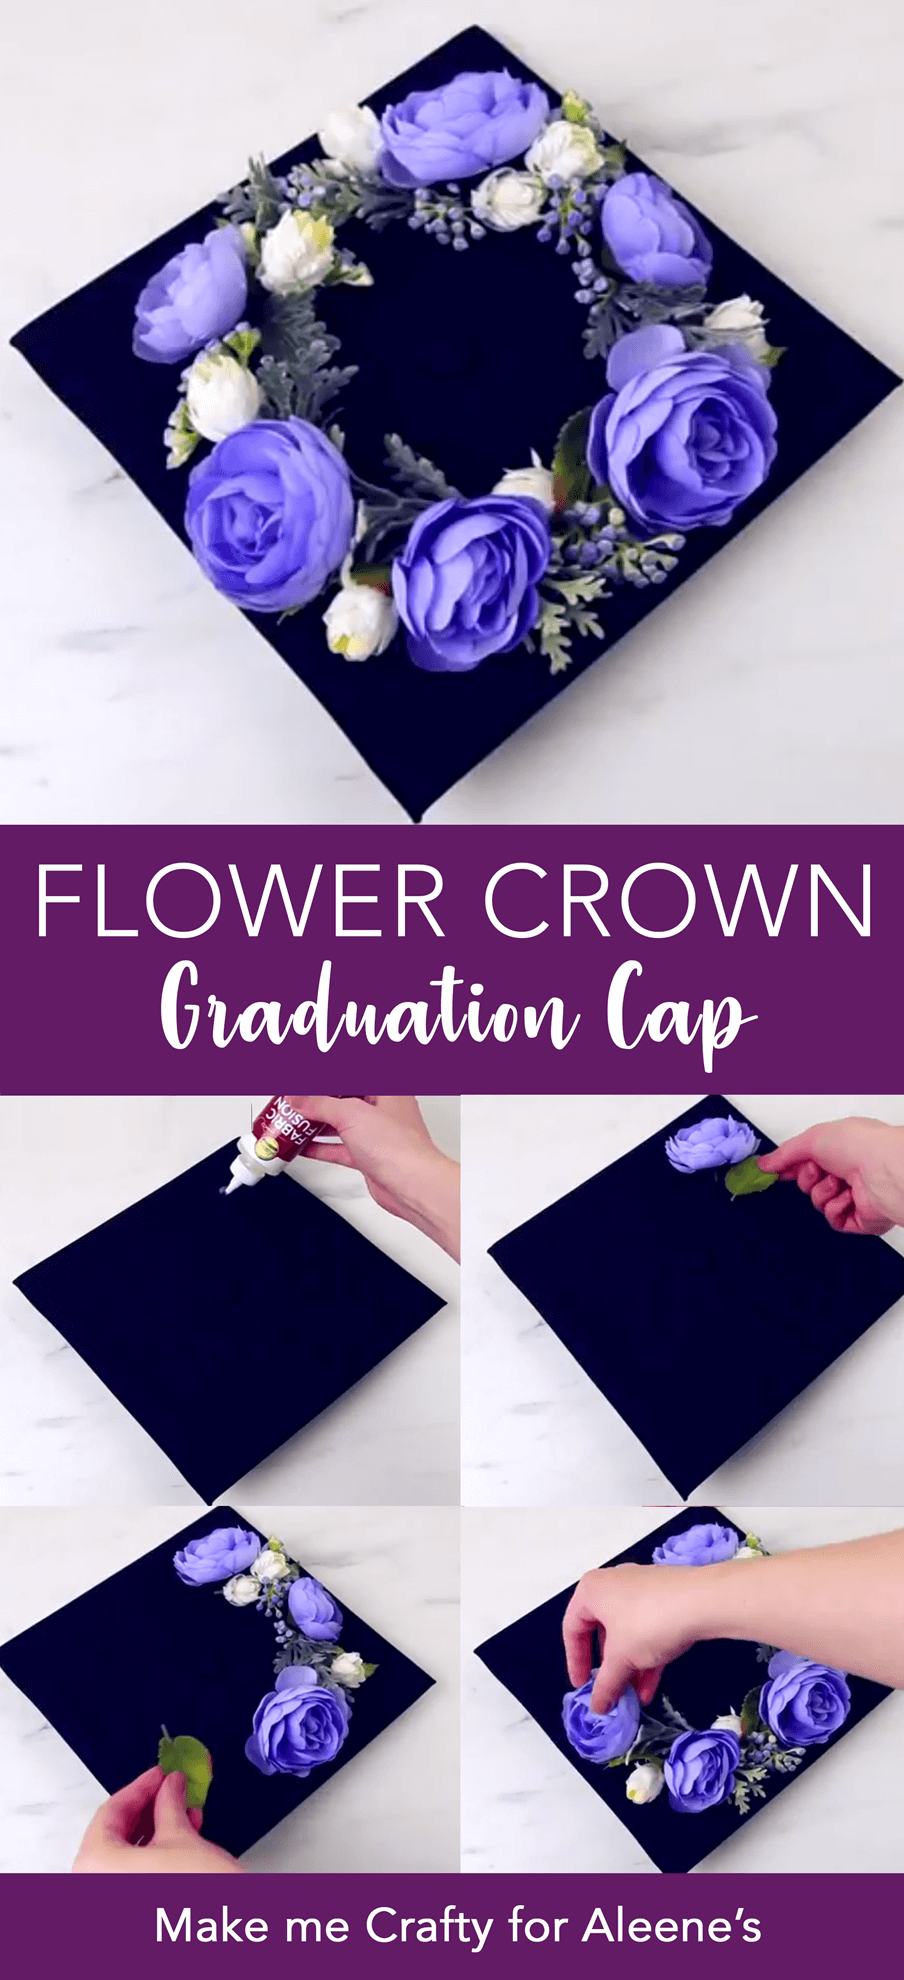 3 Ways to DIY a Graduation Cap Step 10